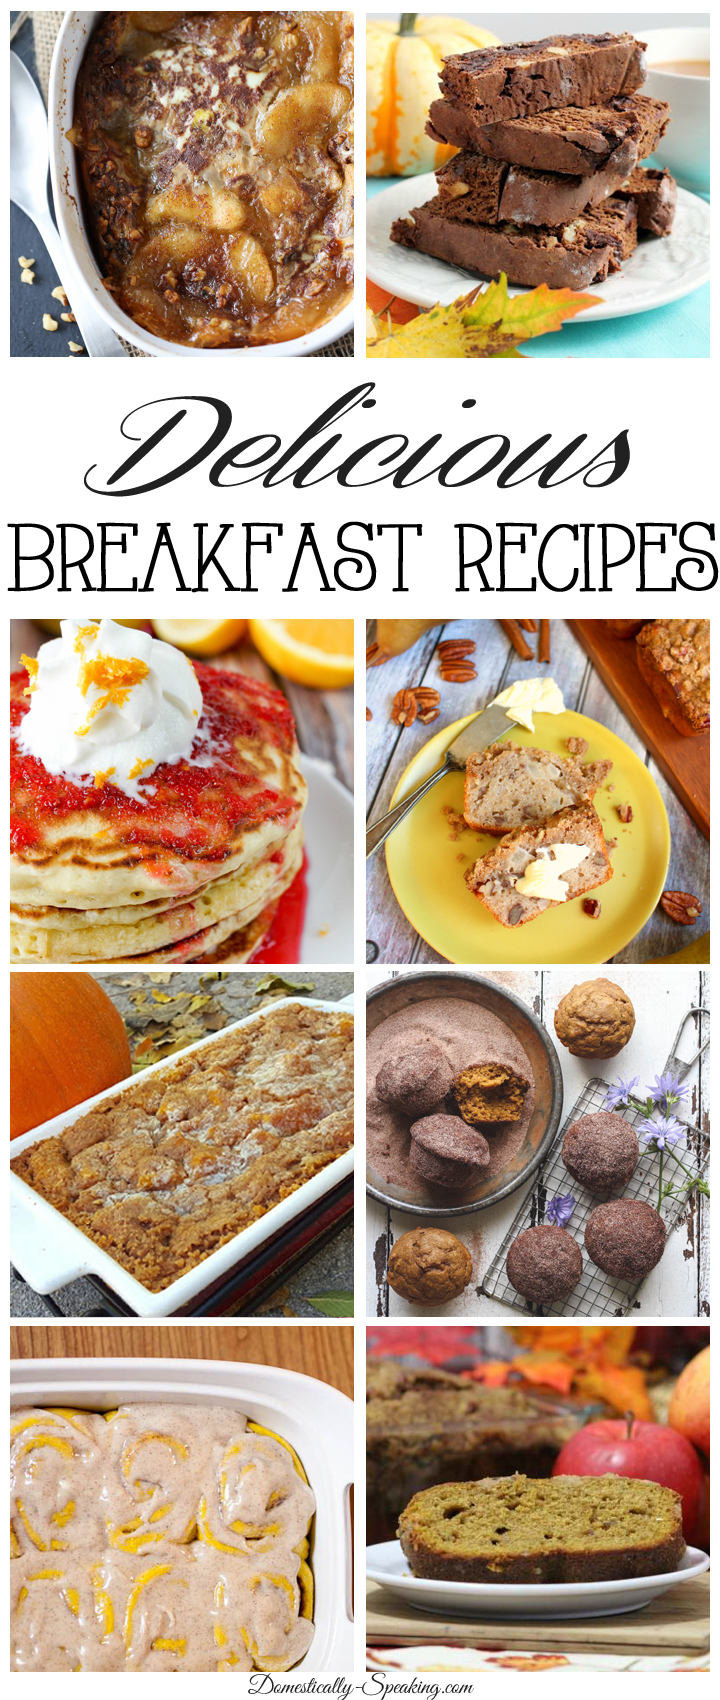 Delicious-Breakfast-Recipes